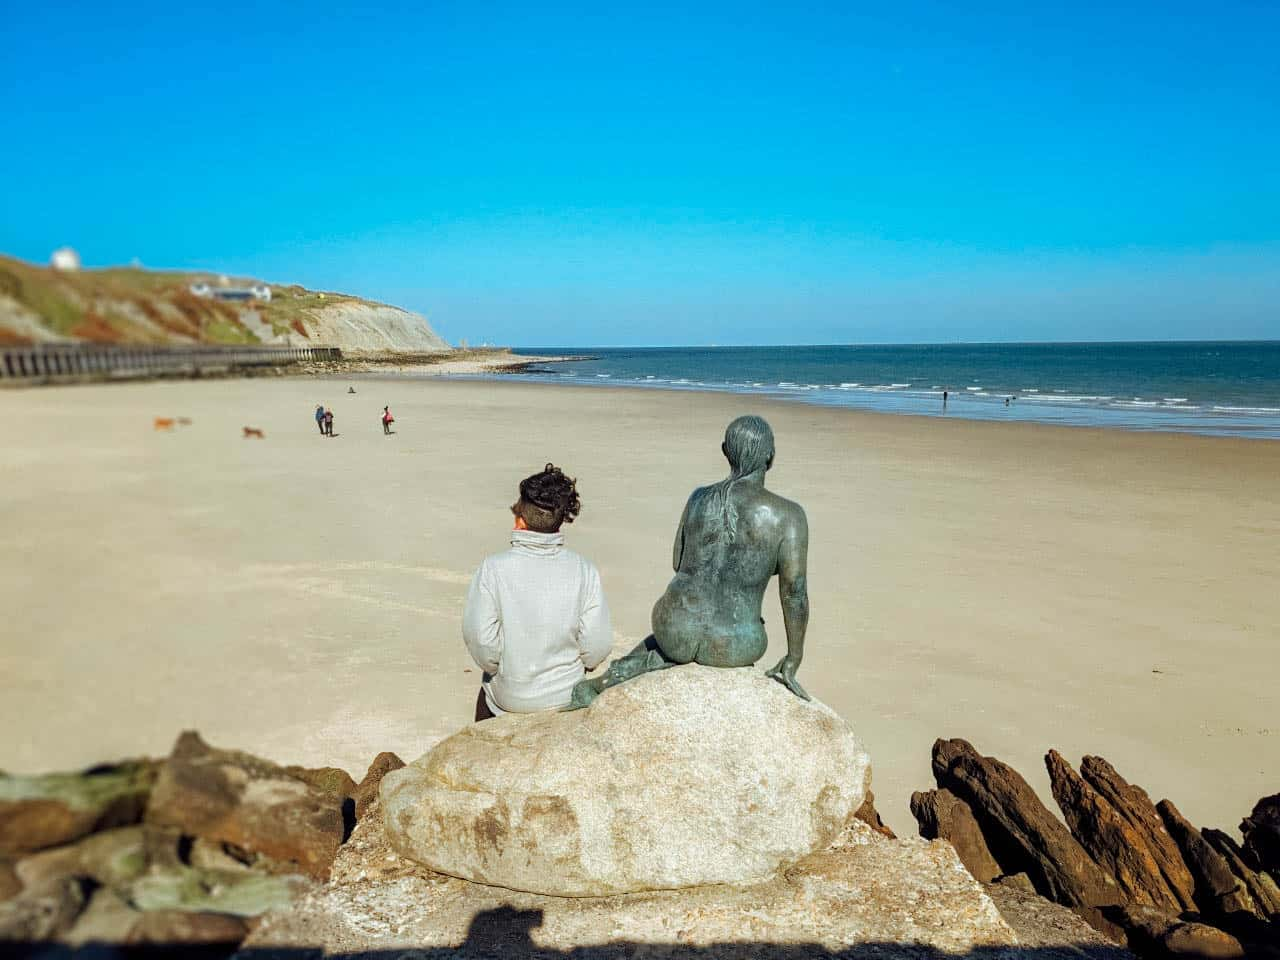 A girl sitting on a rock next to a sulpture of a naked woman, both looking out over a sandy beach towards the sea under a blue sky